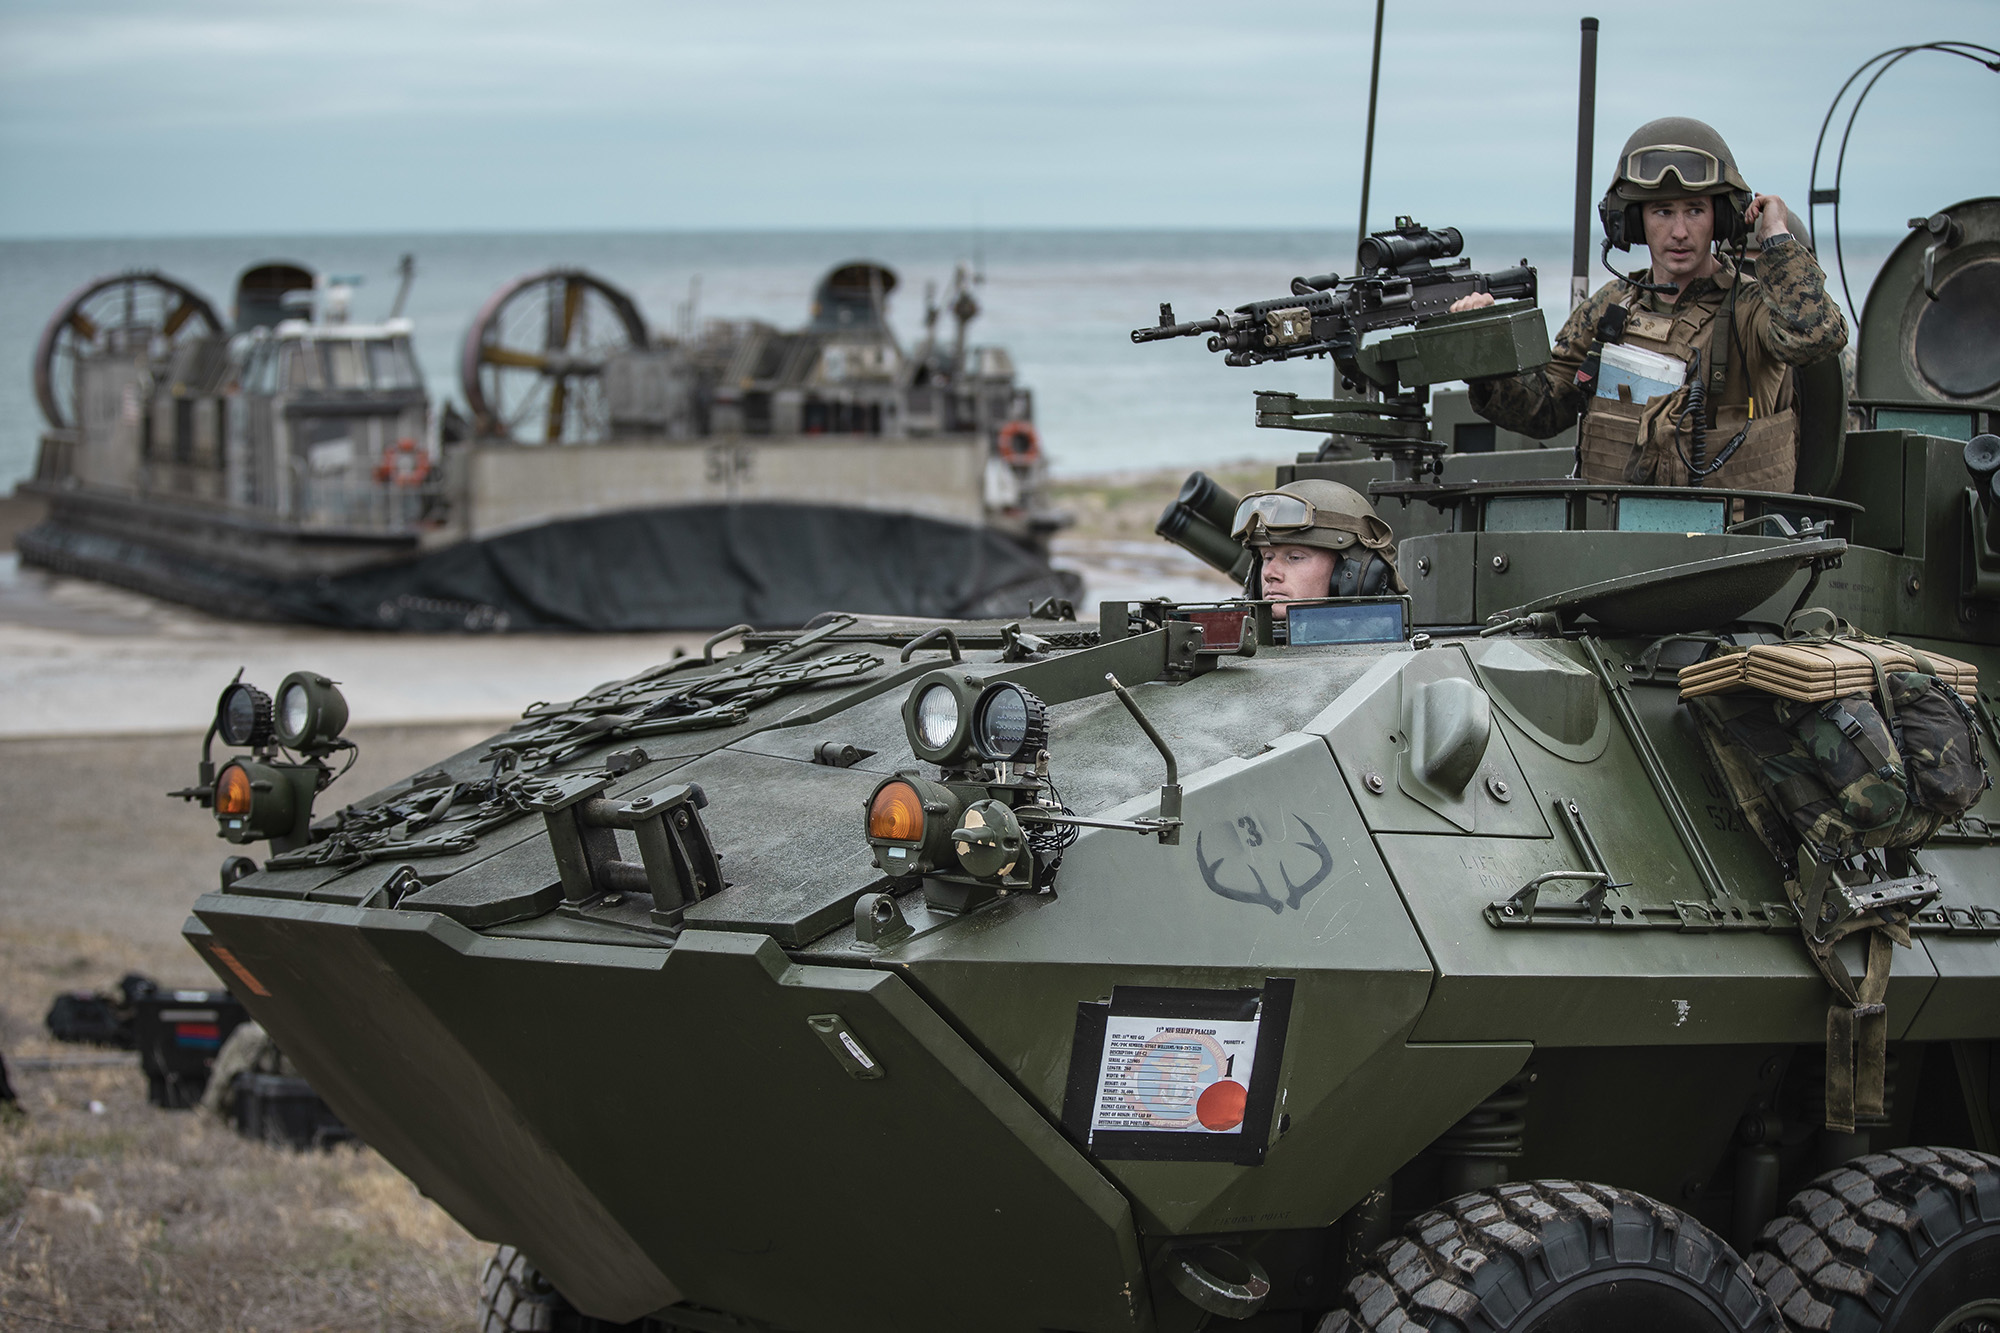 Marines offload a light armored vehicle during an expeditionary advance base exercise at San Clemente Island, Calif., May 15, 2021. (Sgt. Alexis Flores/Marine Corps)